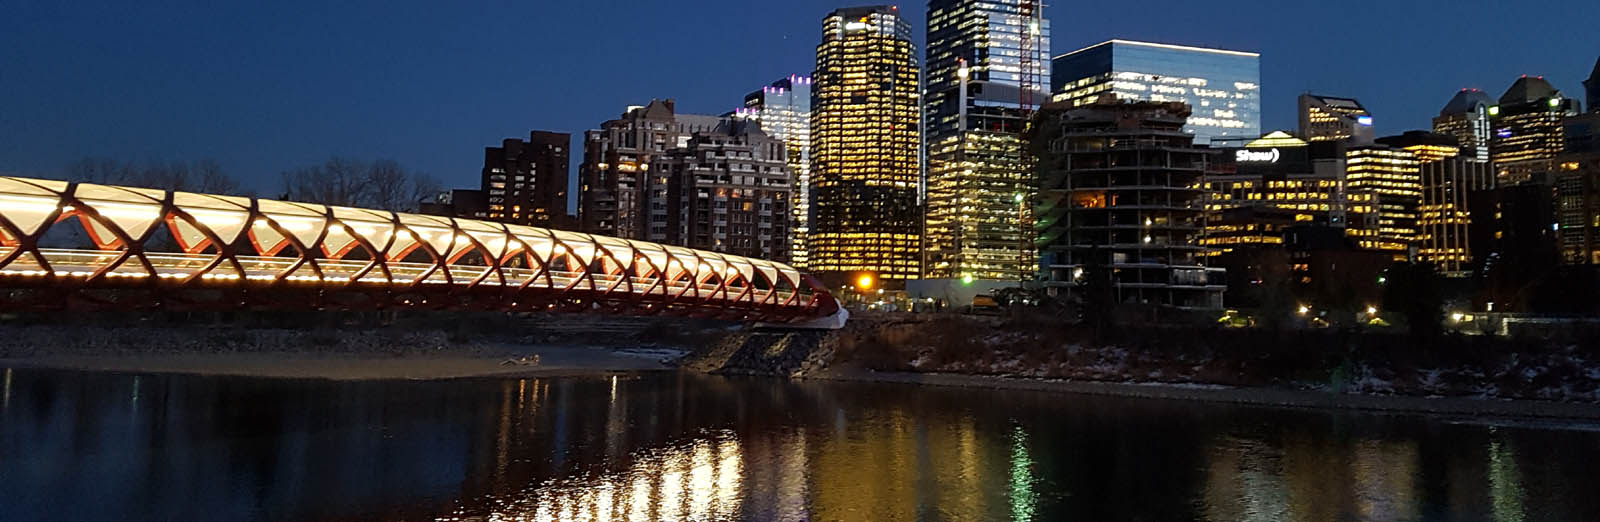 Calgary - Peace Bridge at night with reflection - sliver